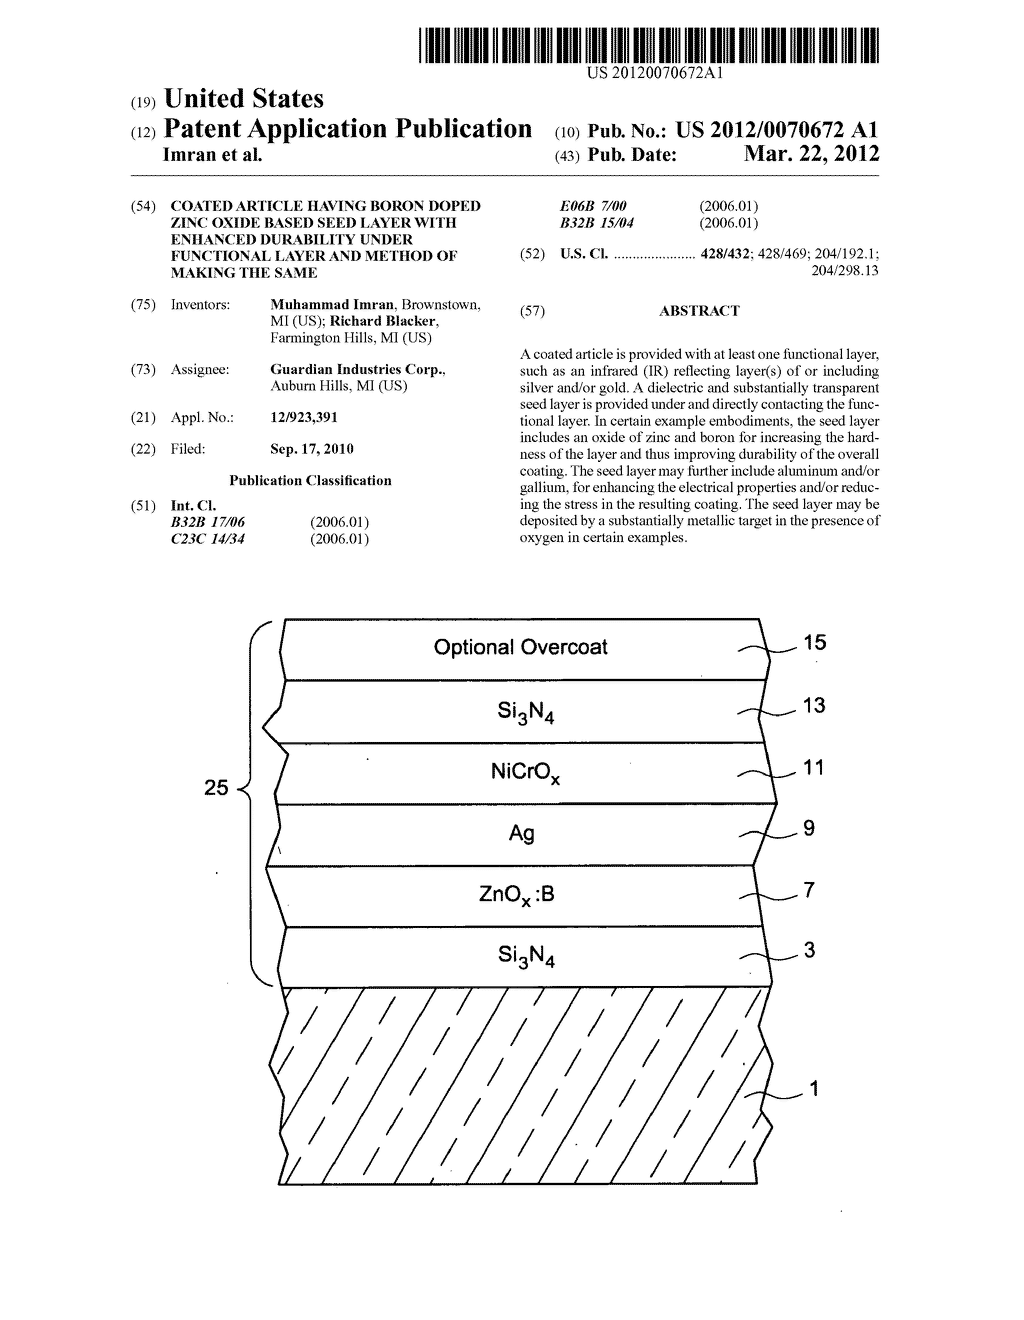 Coated article having boron doped zinc oxide based seed layer with     enhanced durability under functional layer and method of making the same - diagram, schematic, and image 01